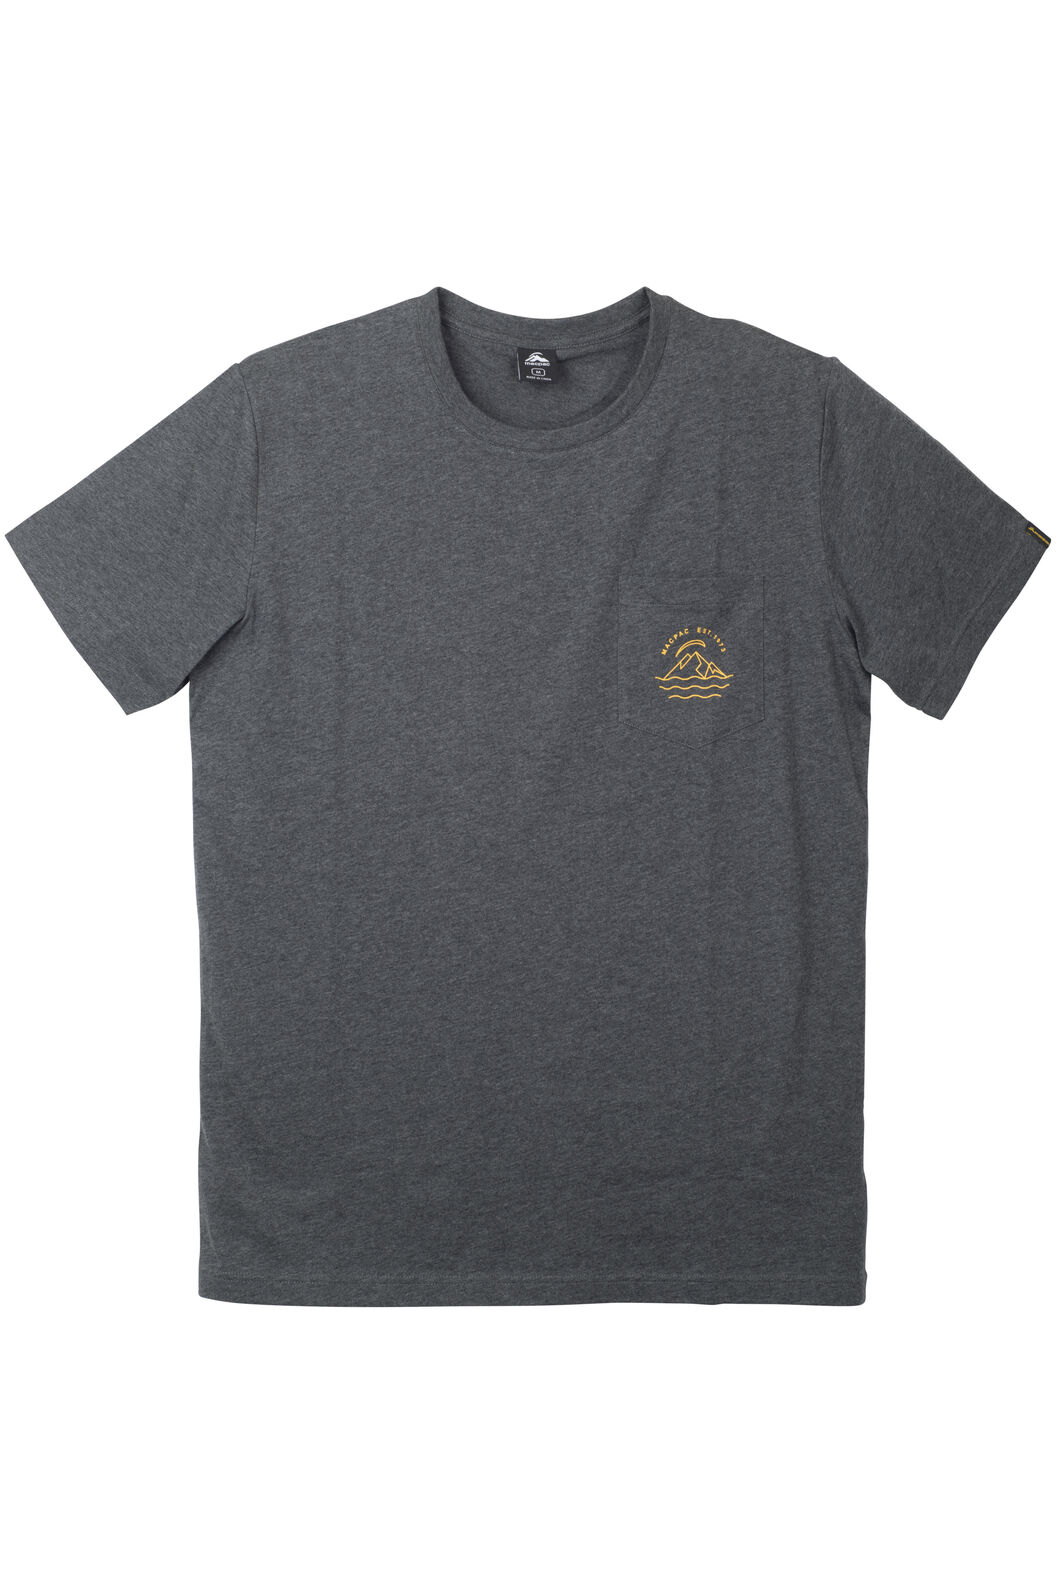 Pocket Organic Cotton Tee - Men's, Charcoal Marle, hi-res